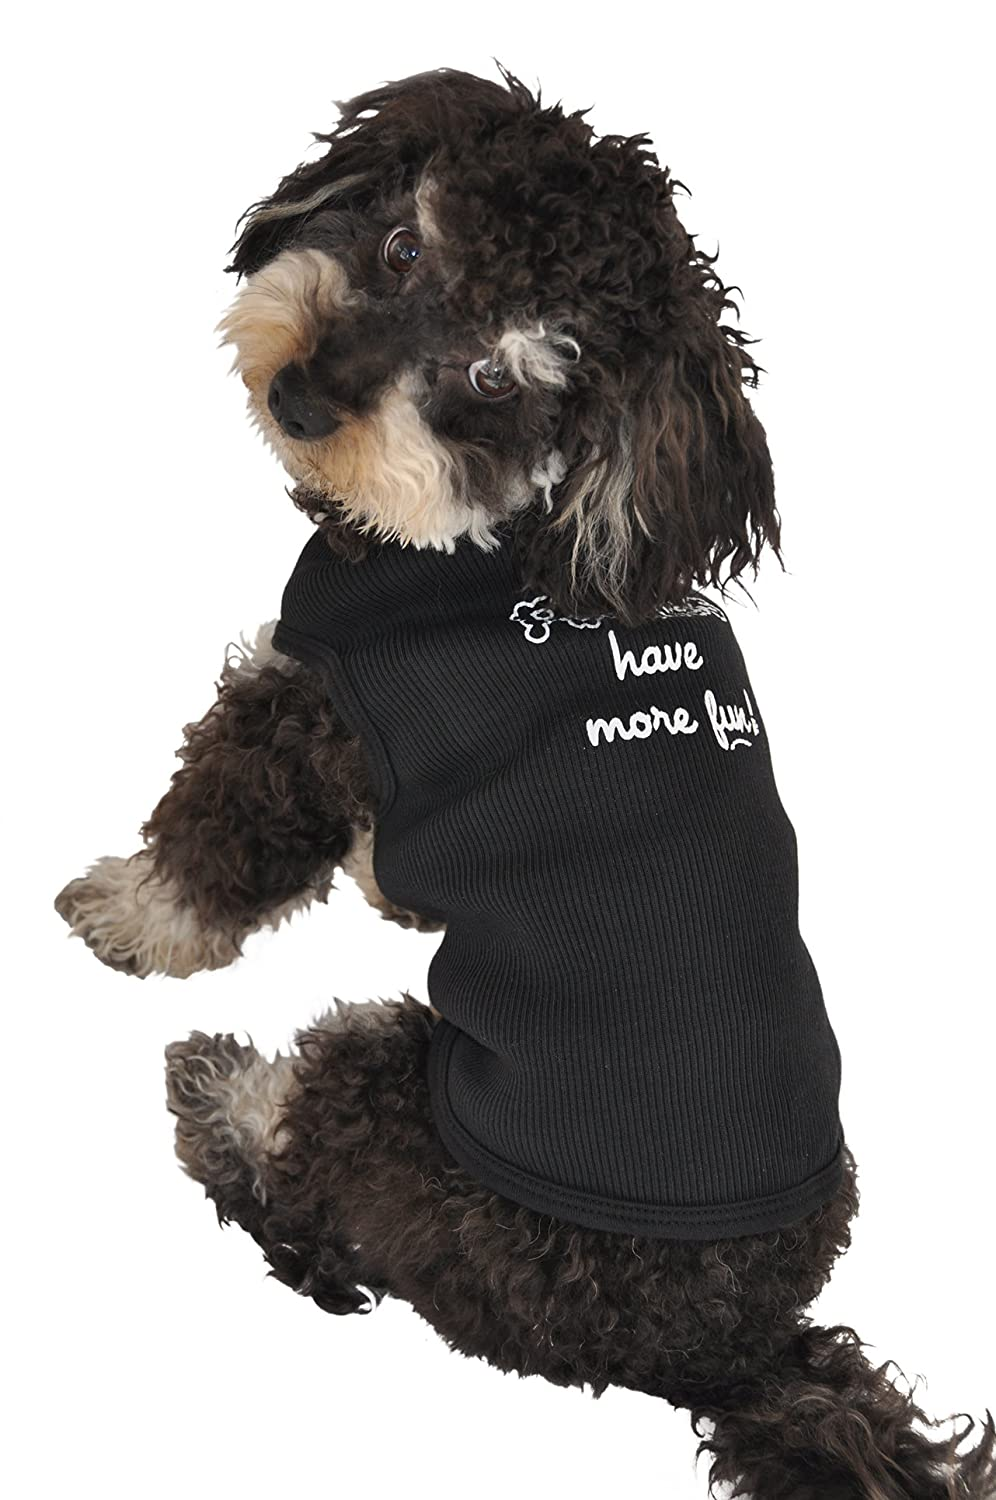 Ruff Ruff and Meow Extra-Small Dog Tank Top, Poodles Have More Fun, Black